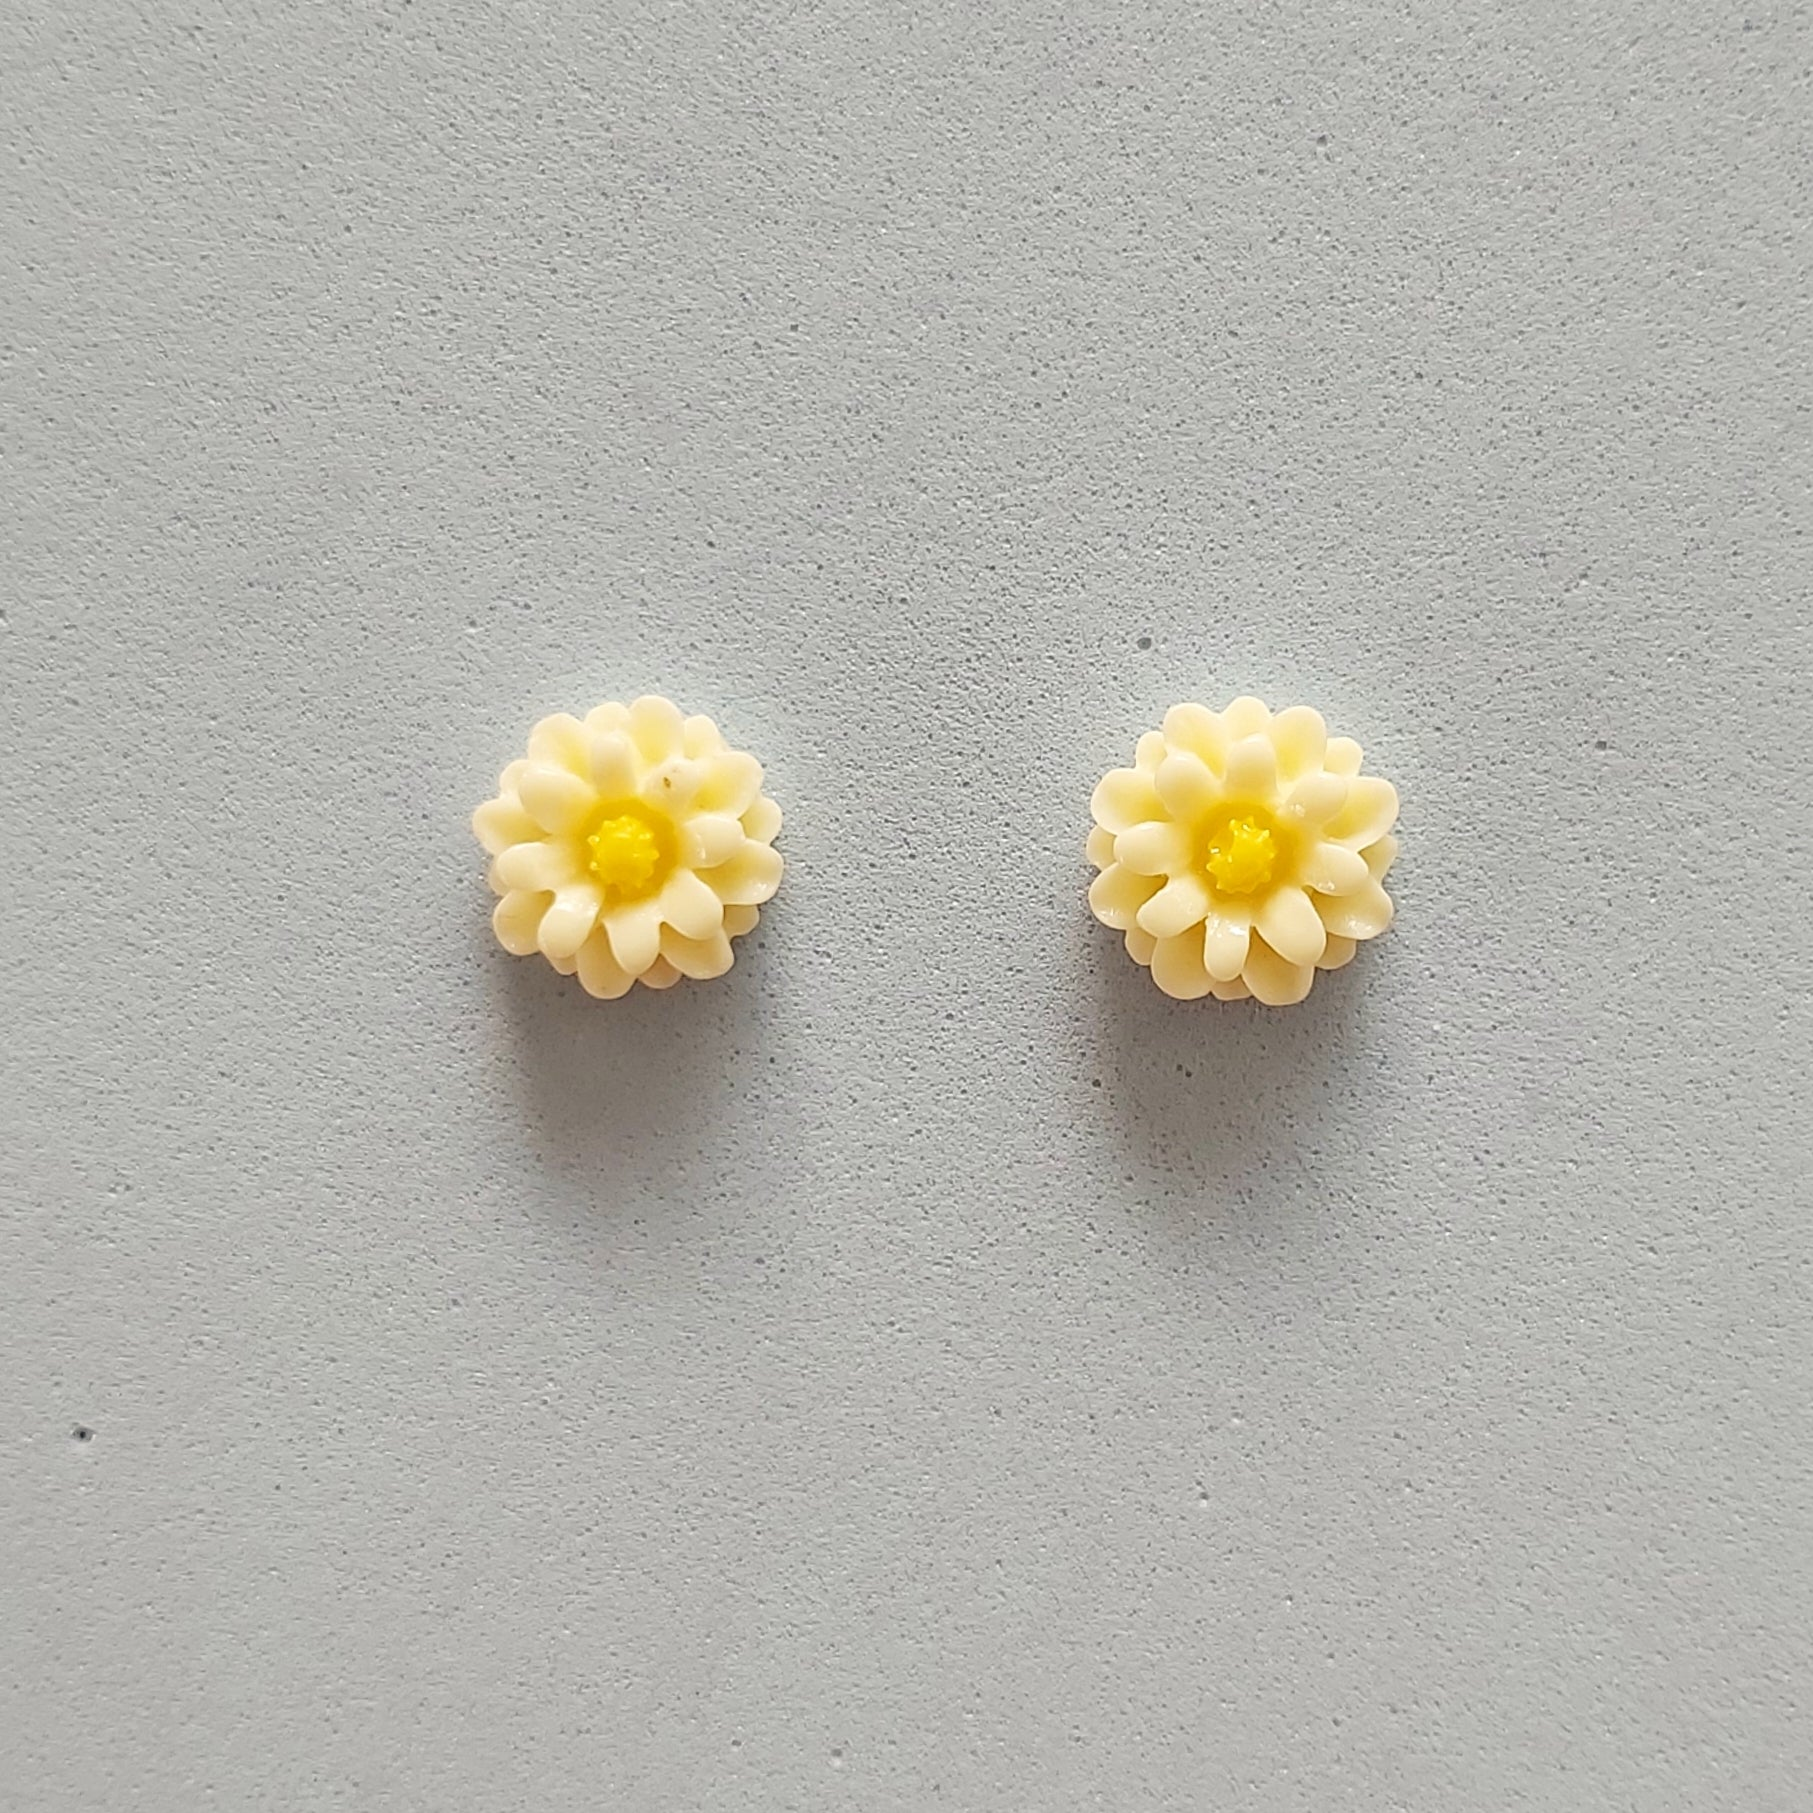 Cream daisy flower studs